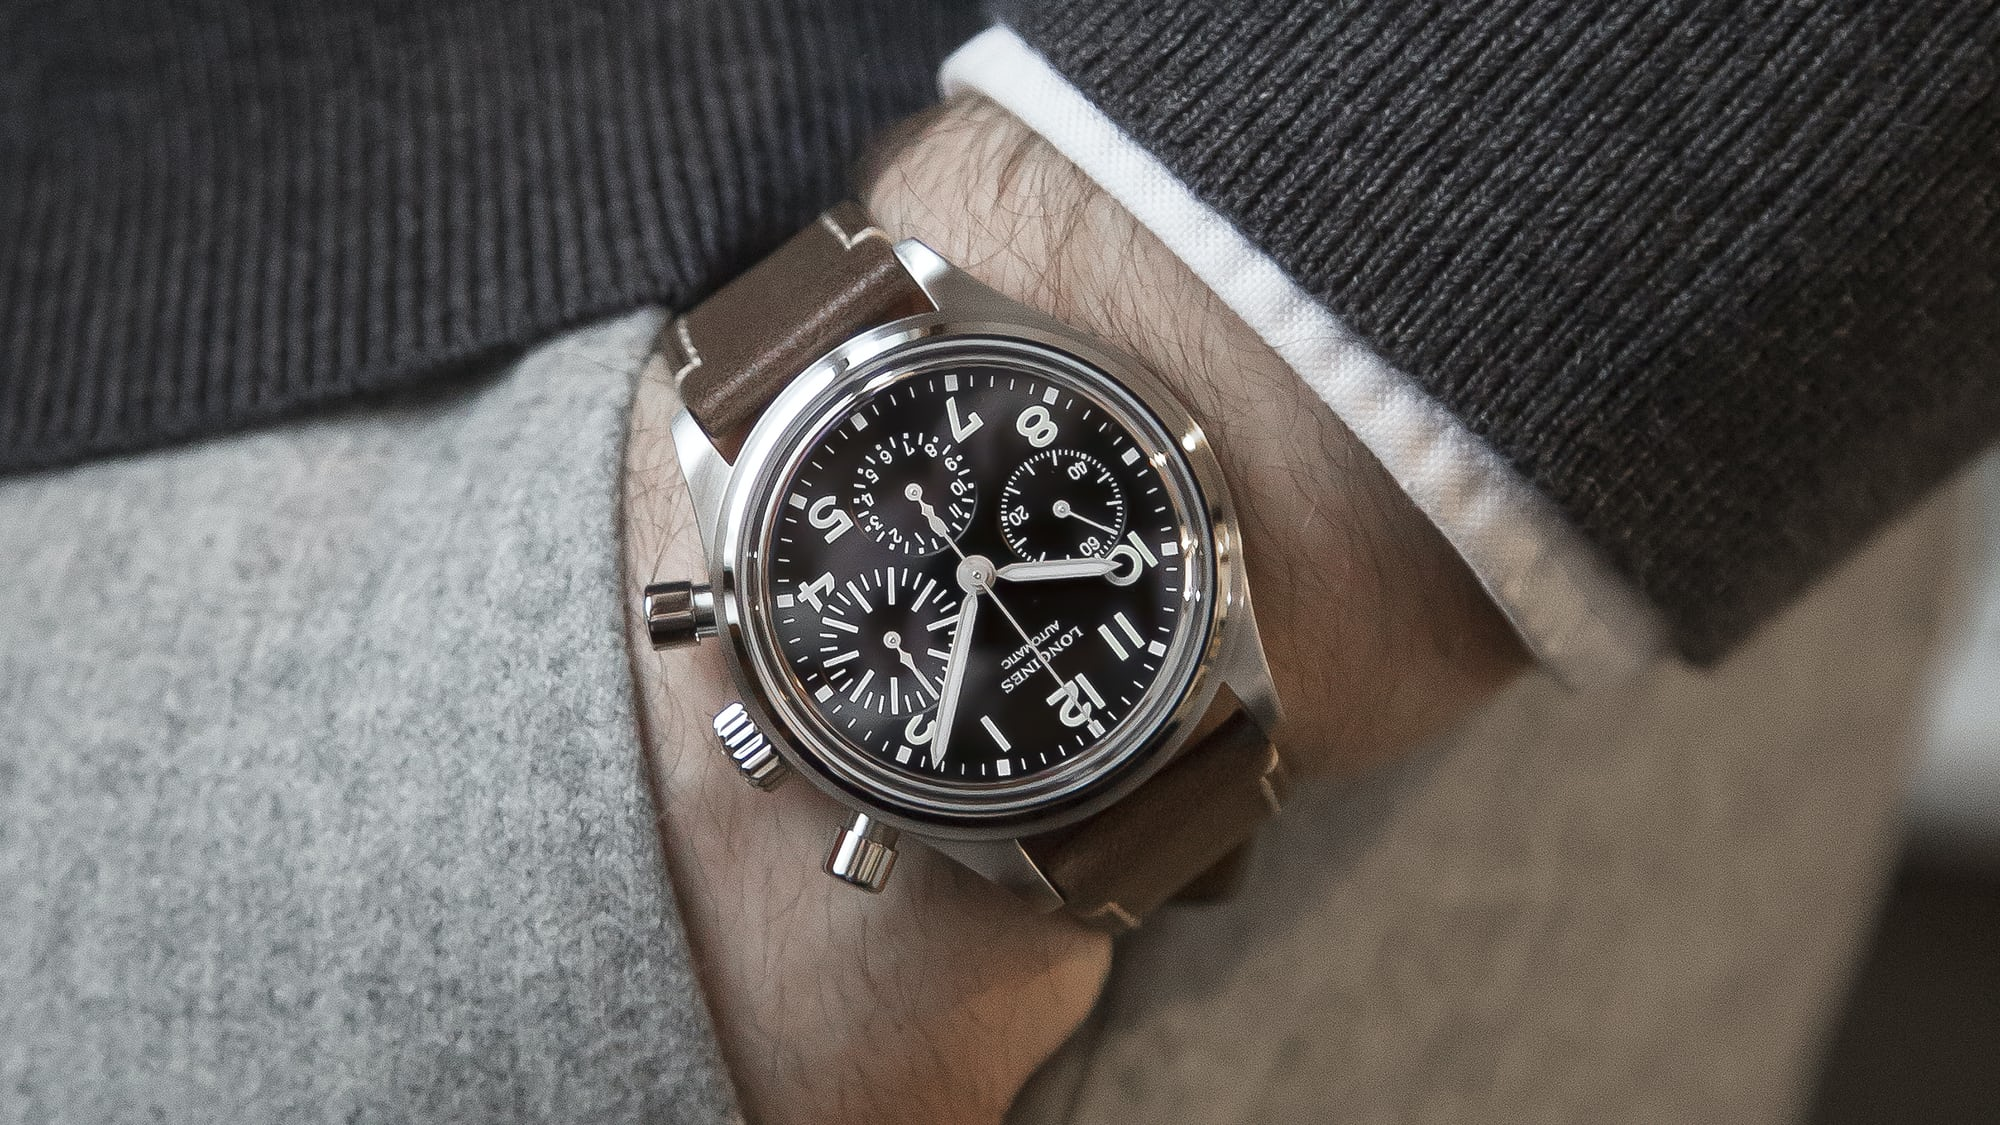 In The Shop - In The Shop: Five Great Watches For The Holidays Under $5,000